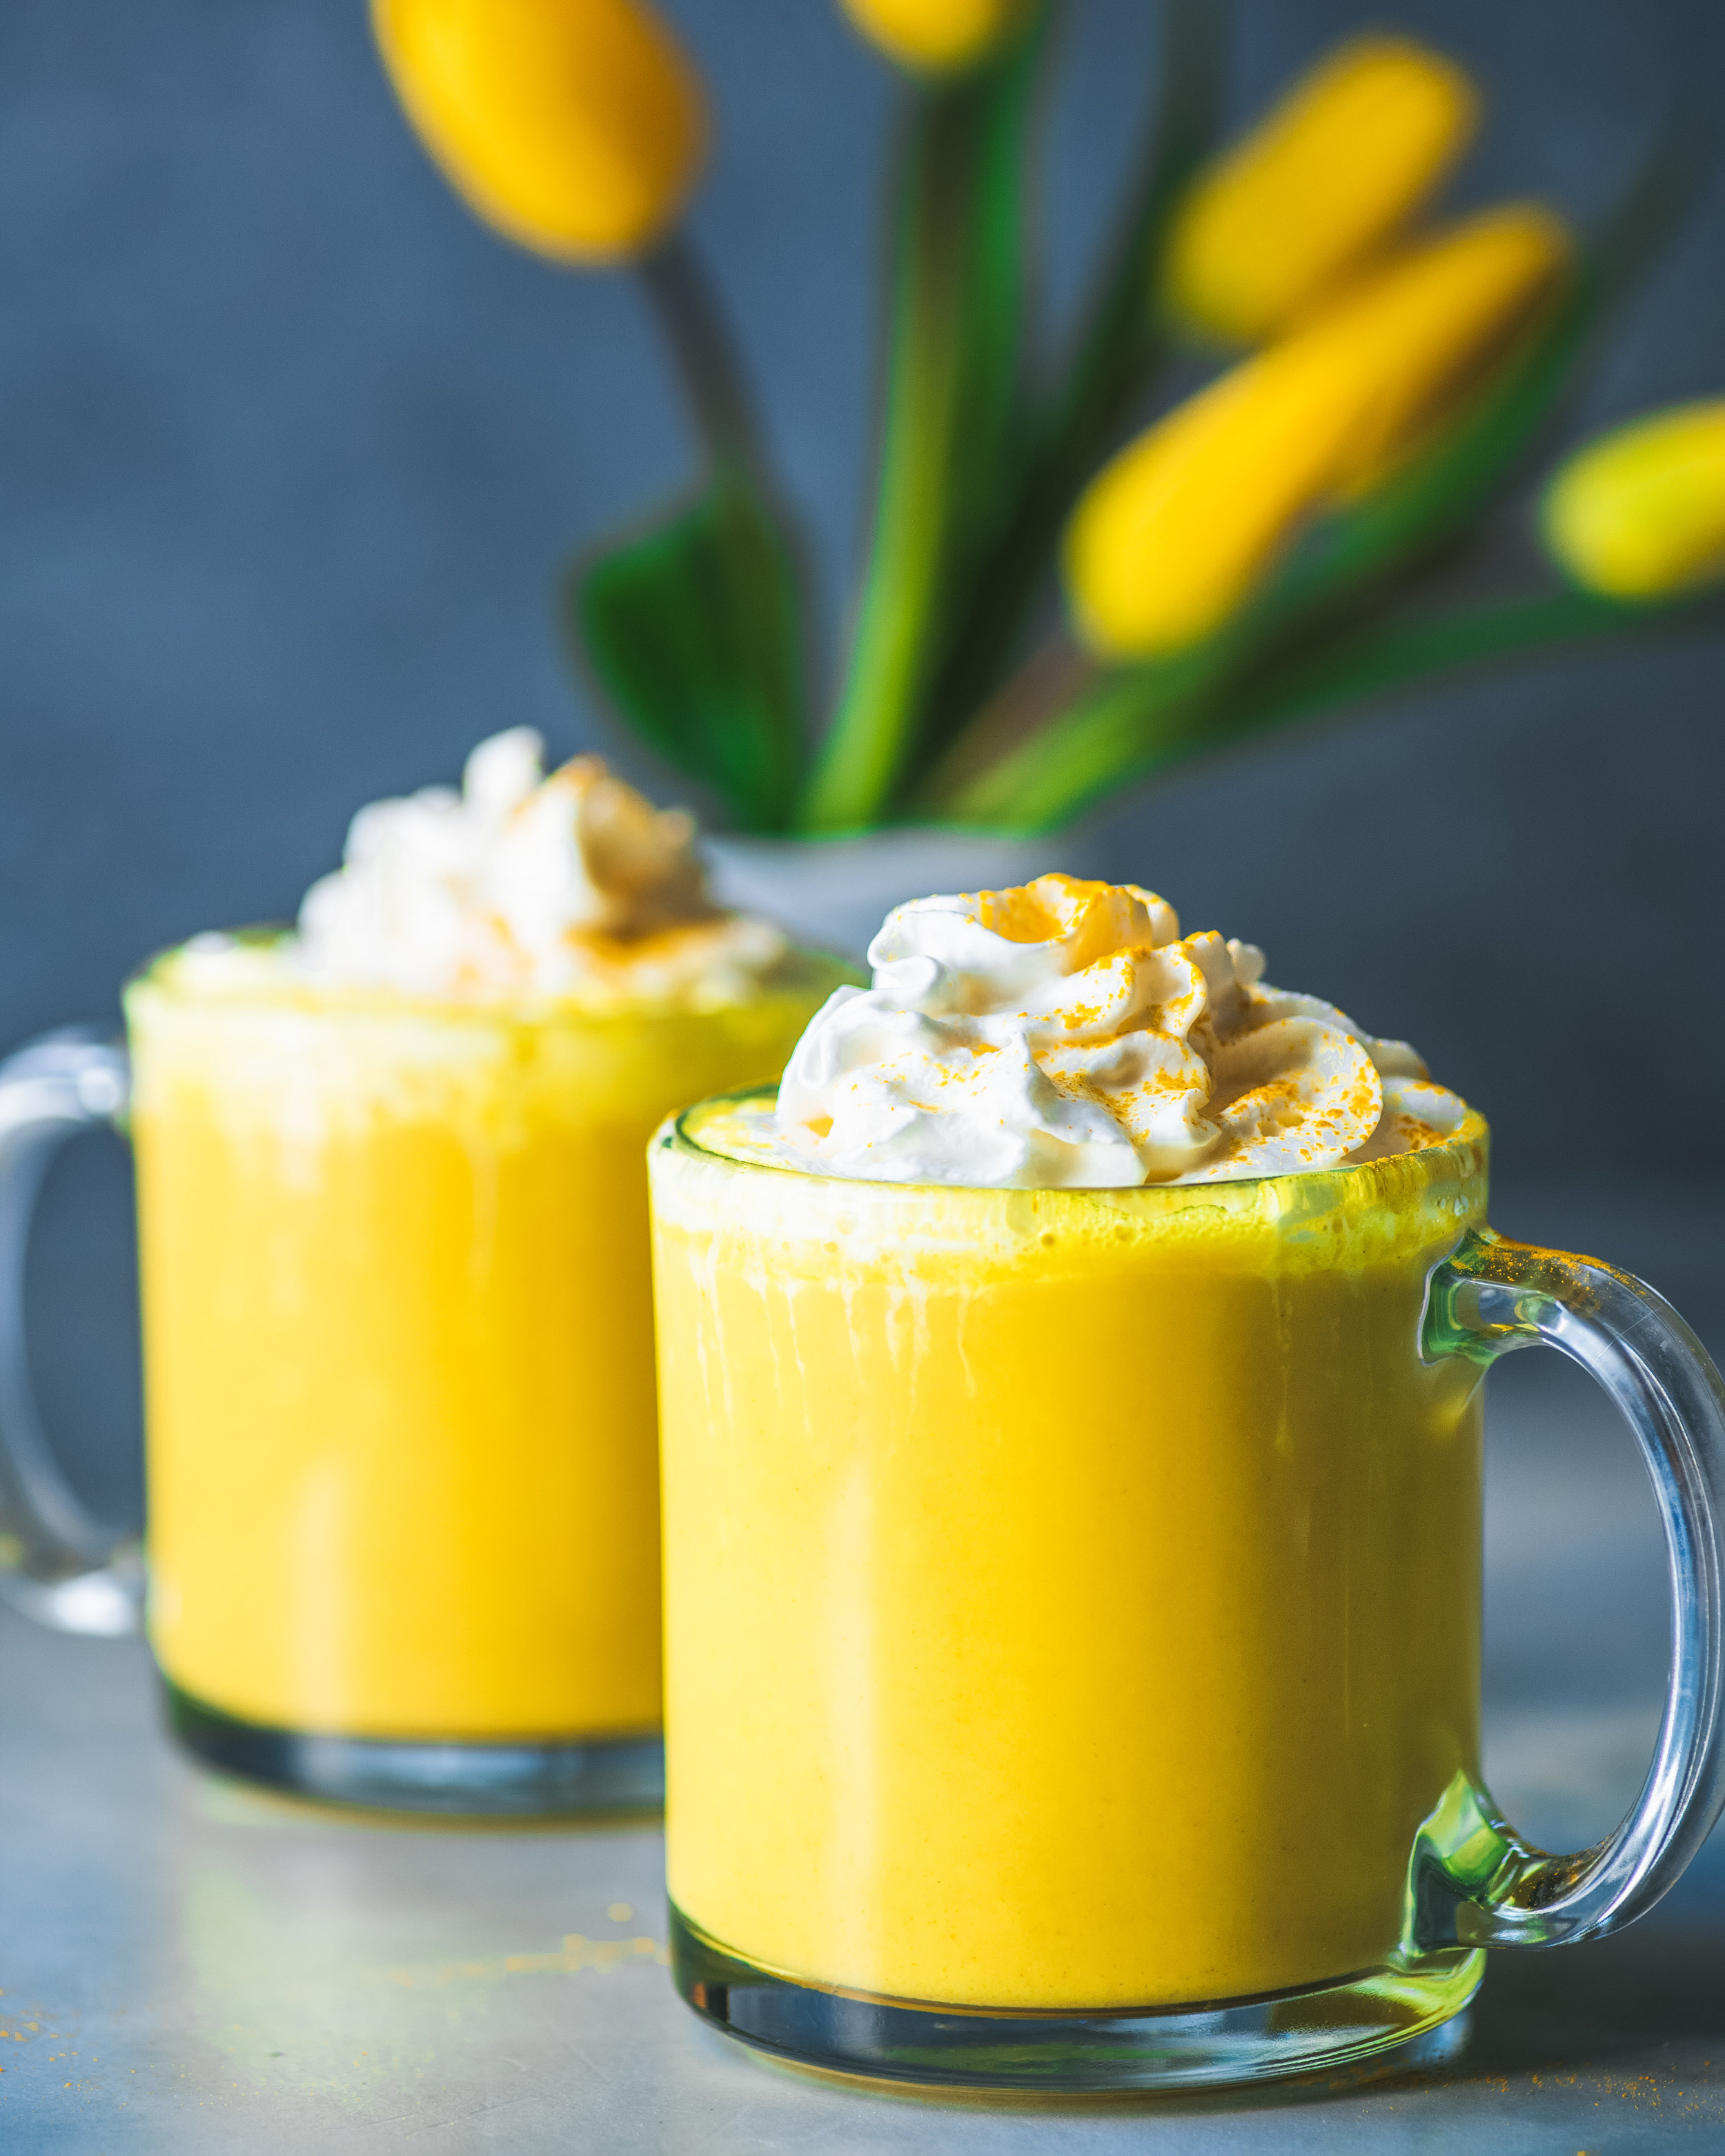 Vegan Golden Milk Turmeric Latte